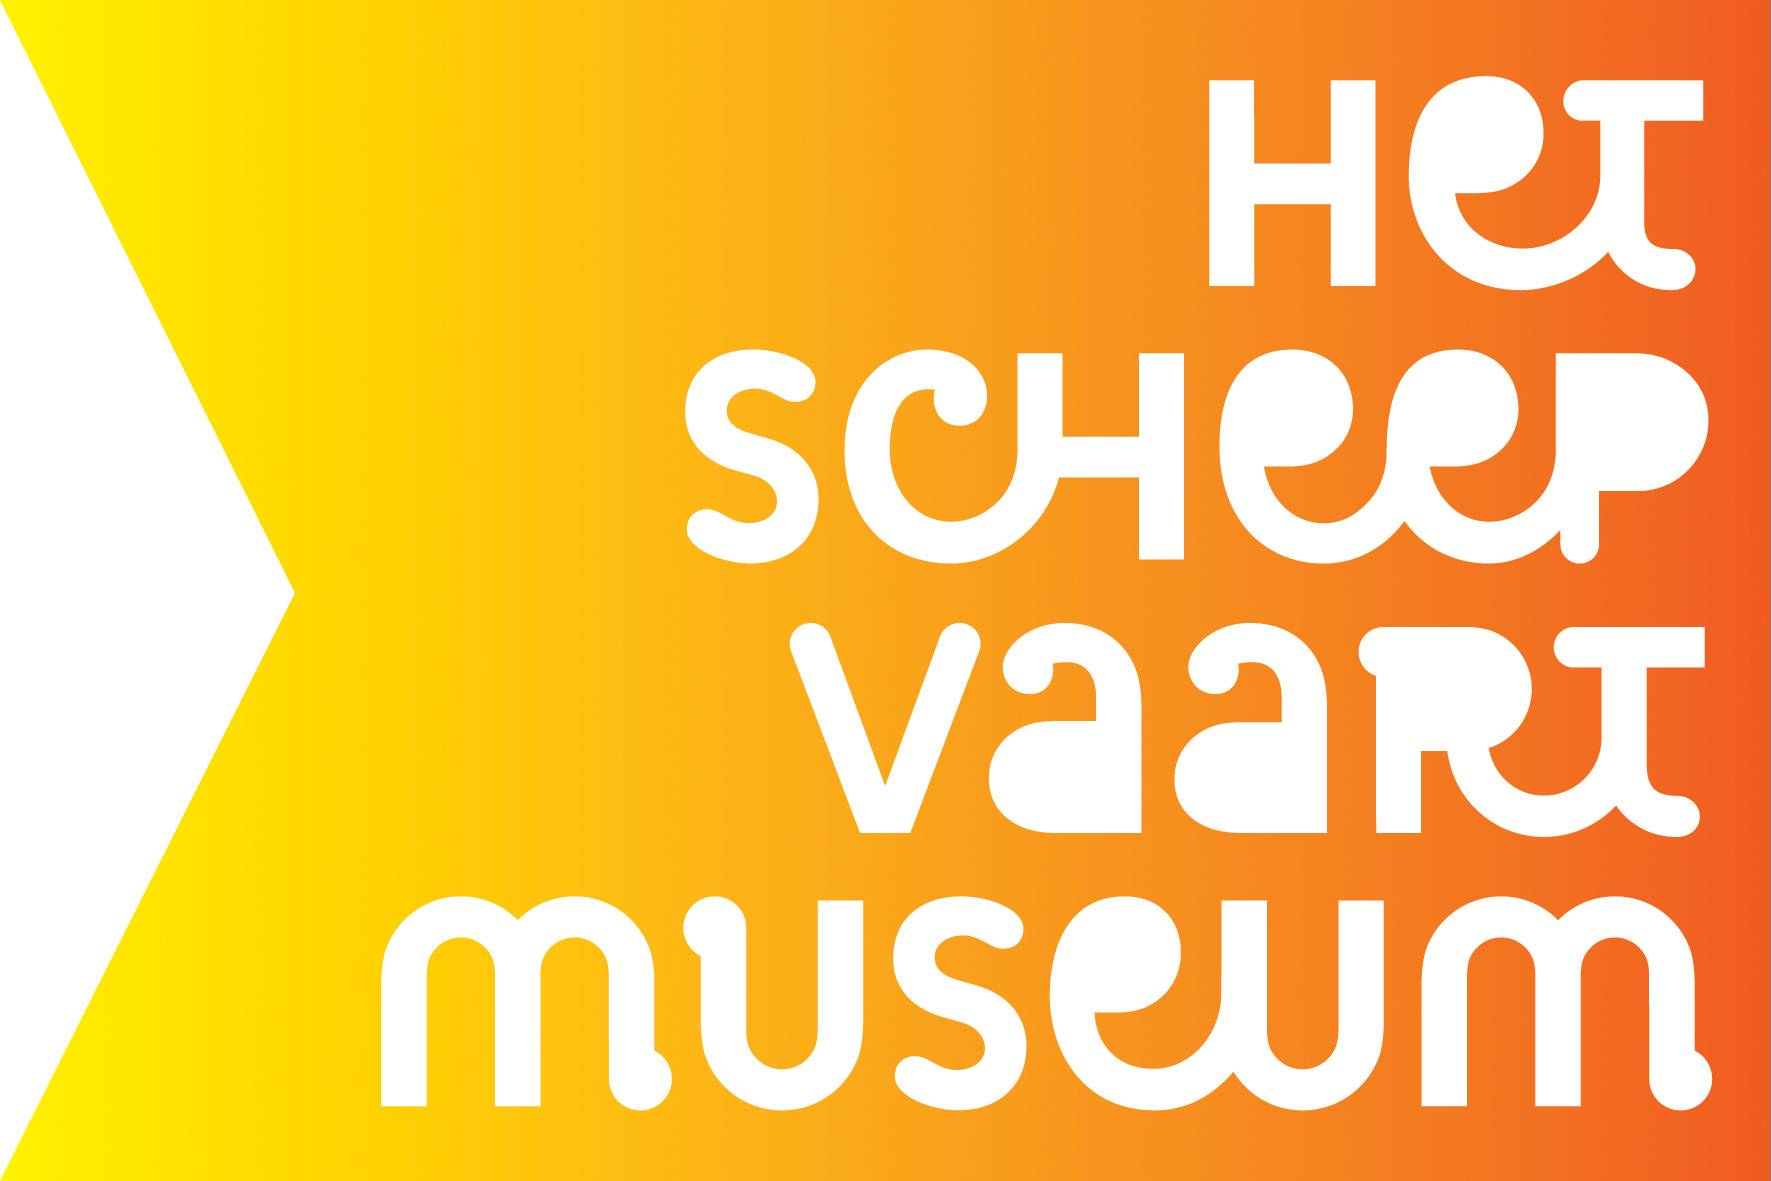 alle musea amsterdam